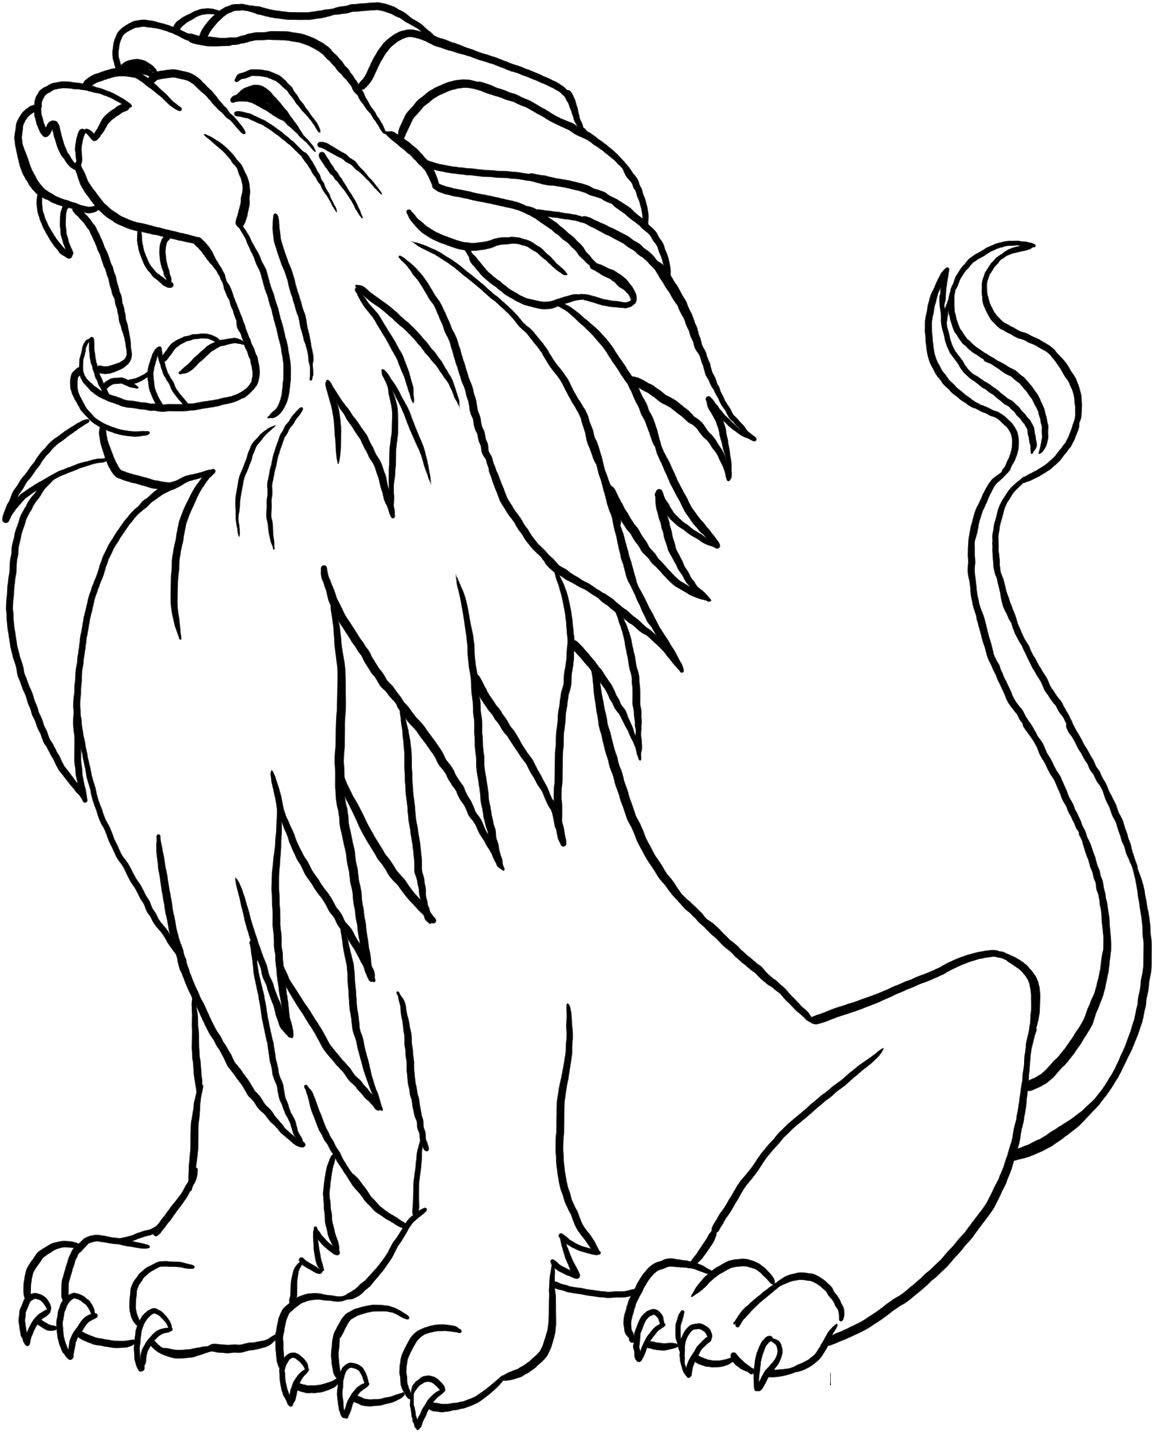 coloring pages for kids lion lion free to color for children lion kids coloring pages for pages kids lion coloring